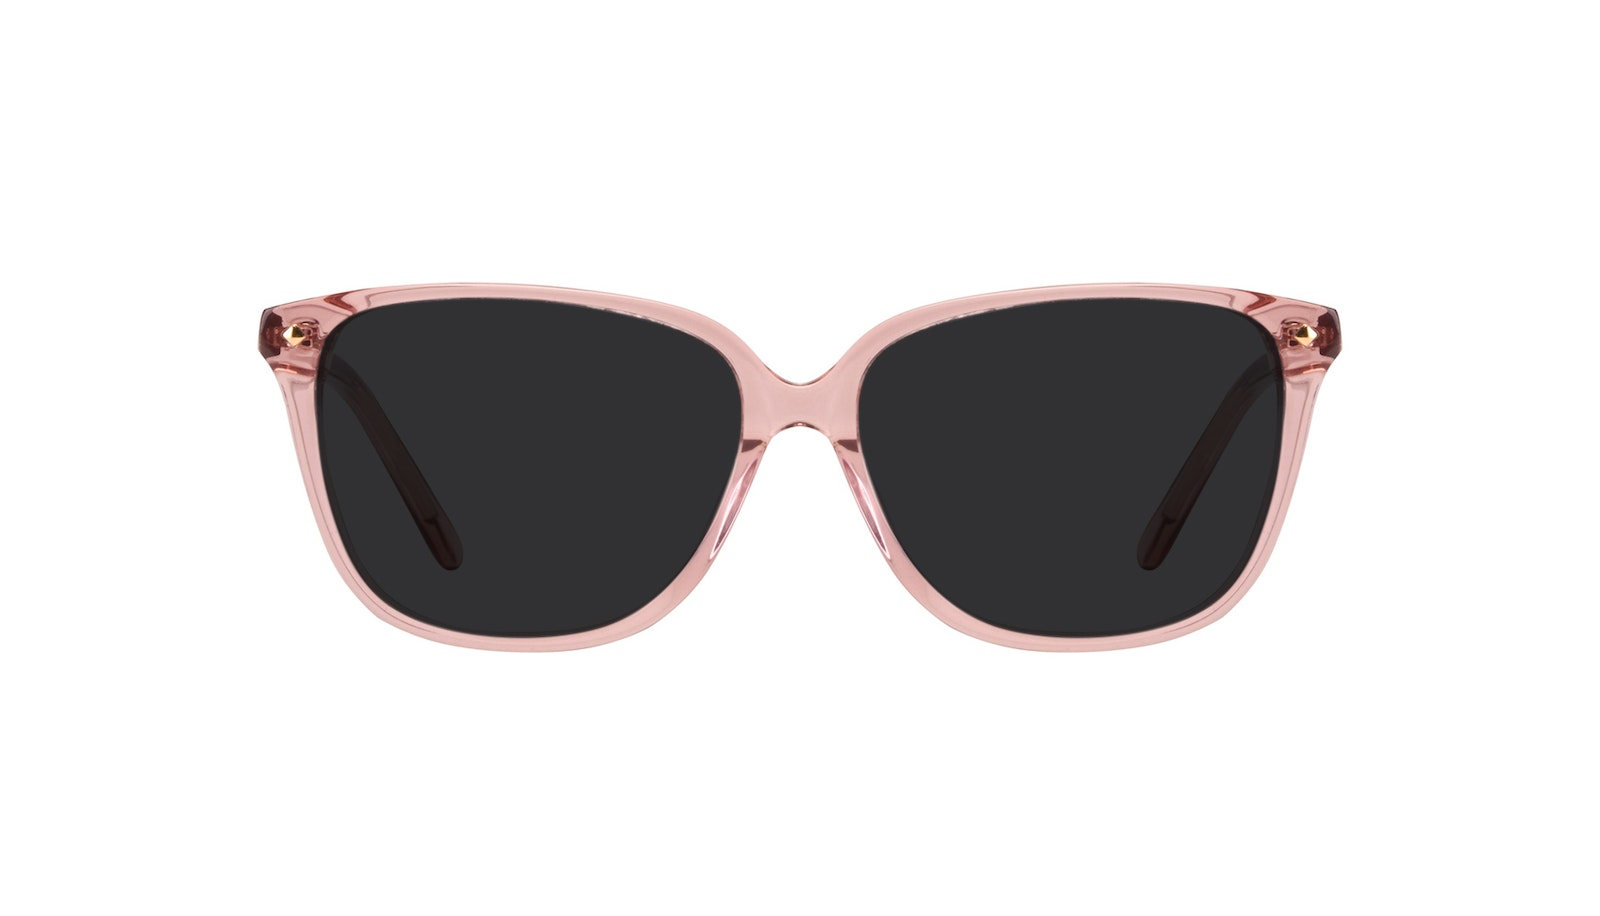 Affordable Fashion Glasses Rectangle Square Sunglasses Women Muse Rose